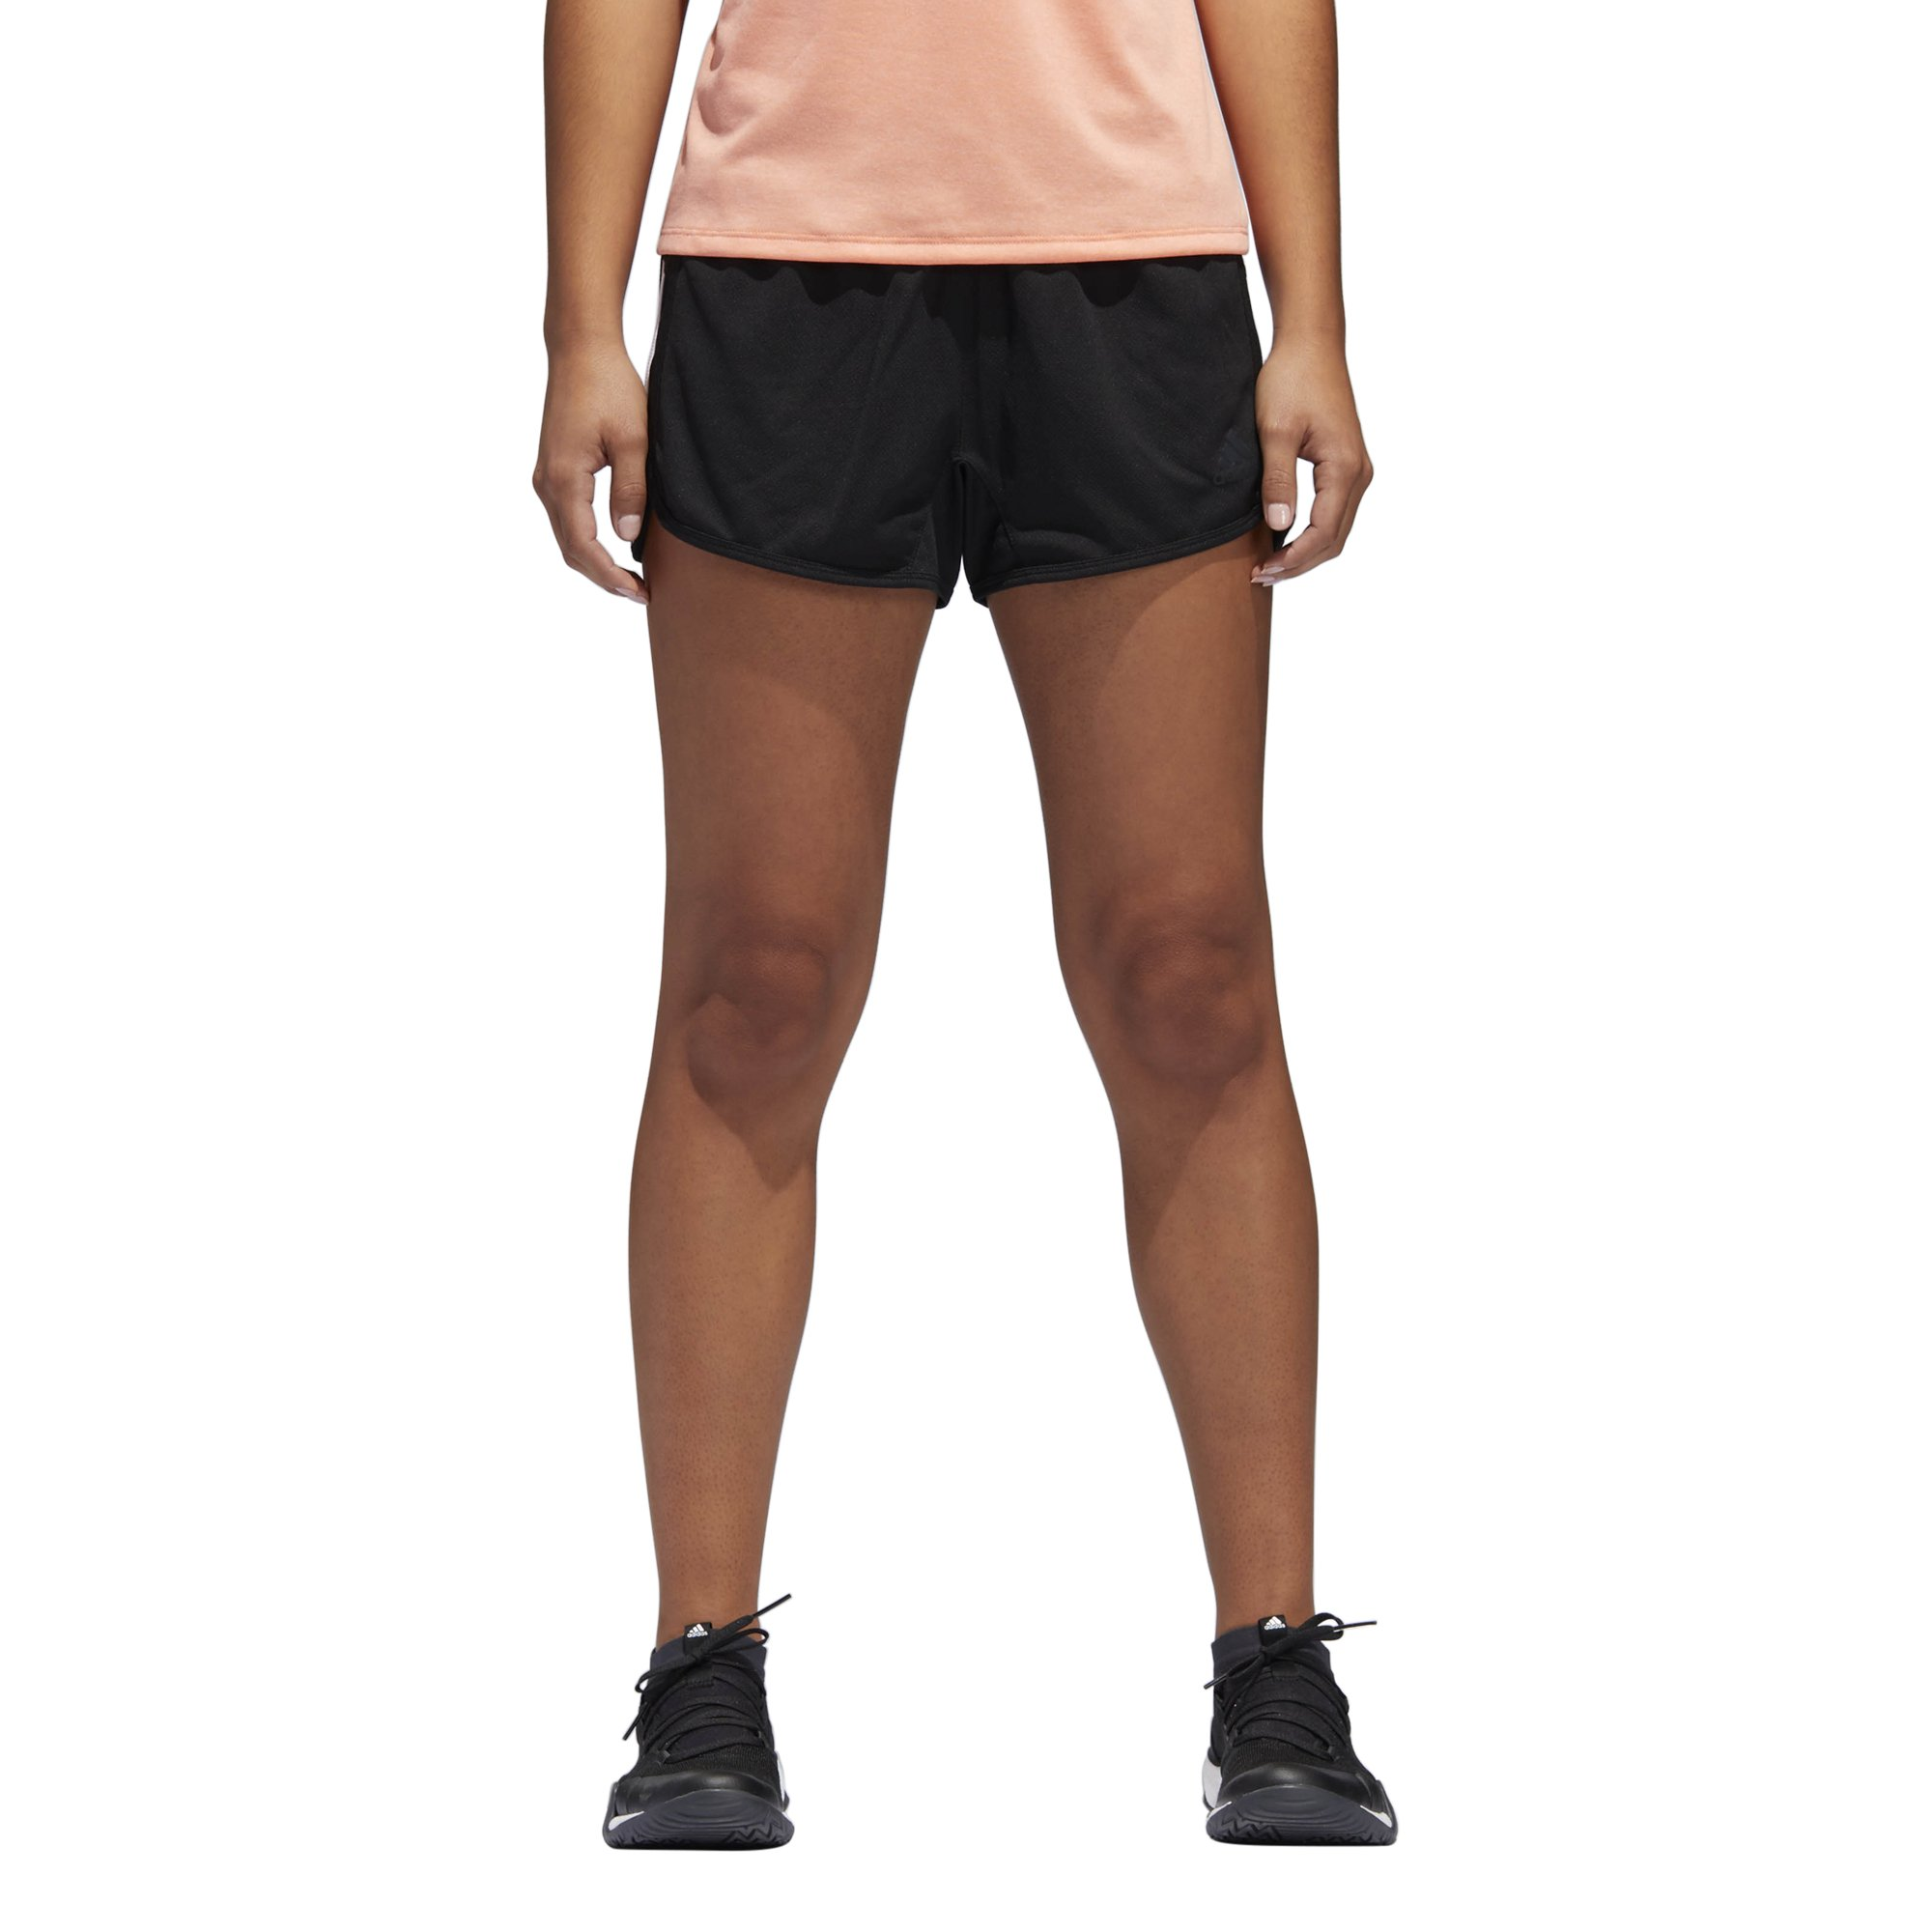 adidas Women's Designed 2 Move Knit Shorts, Black, X-Small by adidas